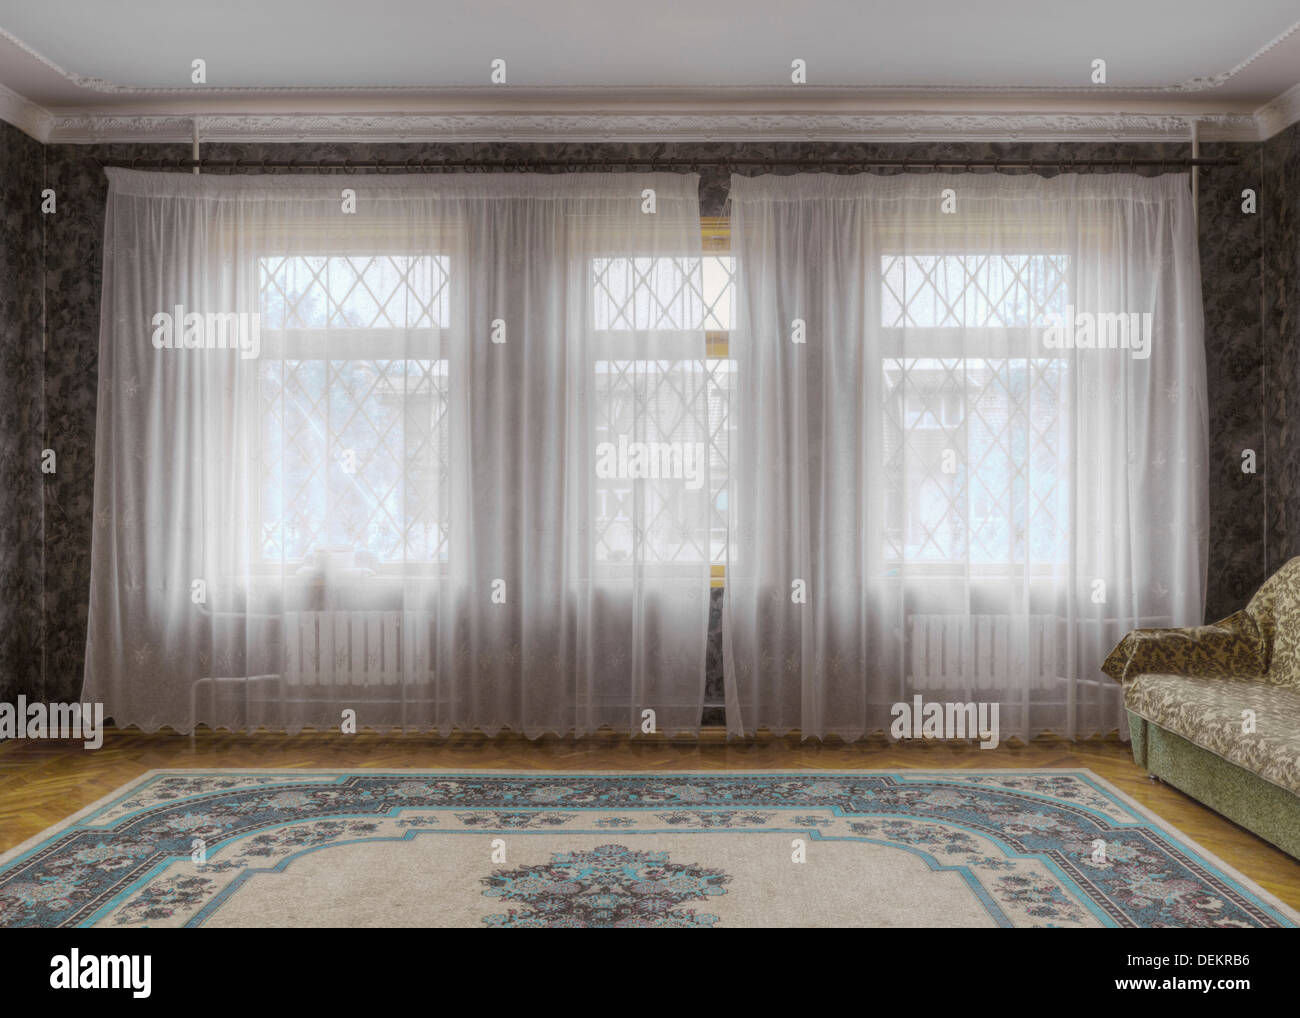 Sheer curtains in sitting room - Stock Image